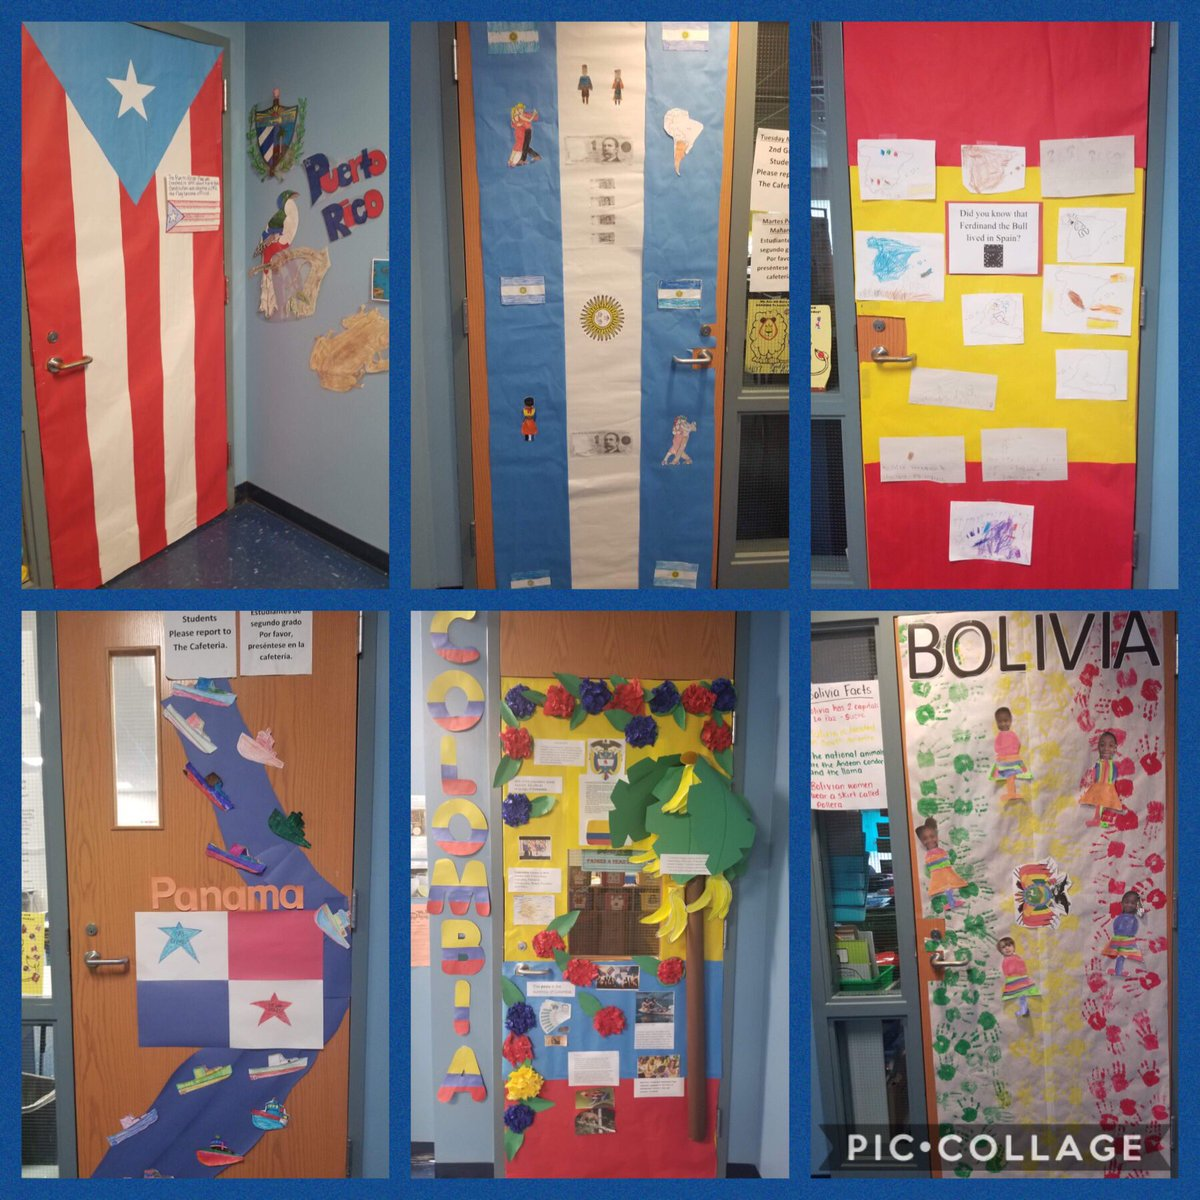 We celebrated Hispanic Heritage Month from September 15 to